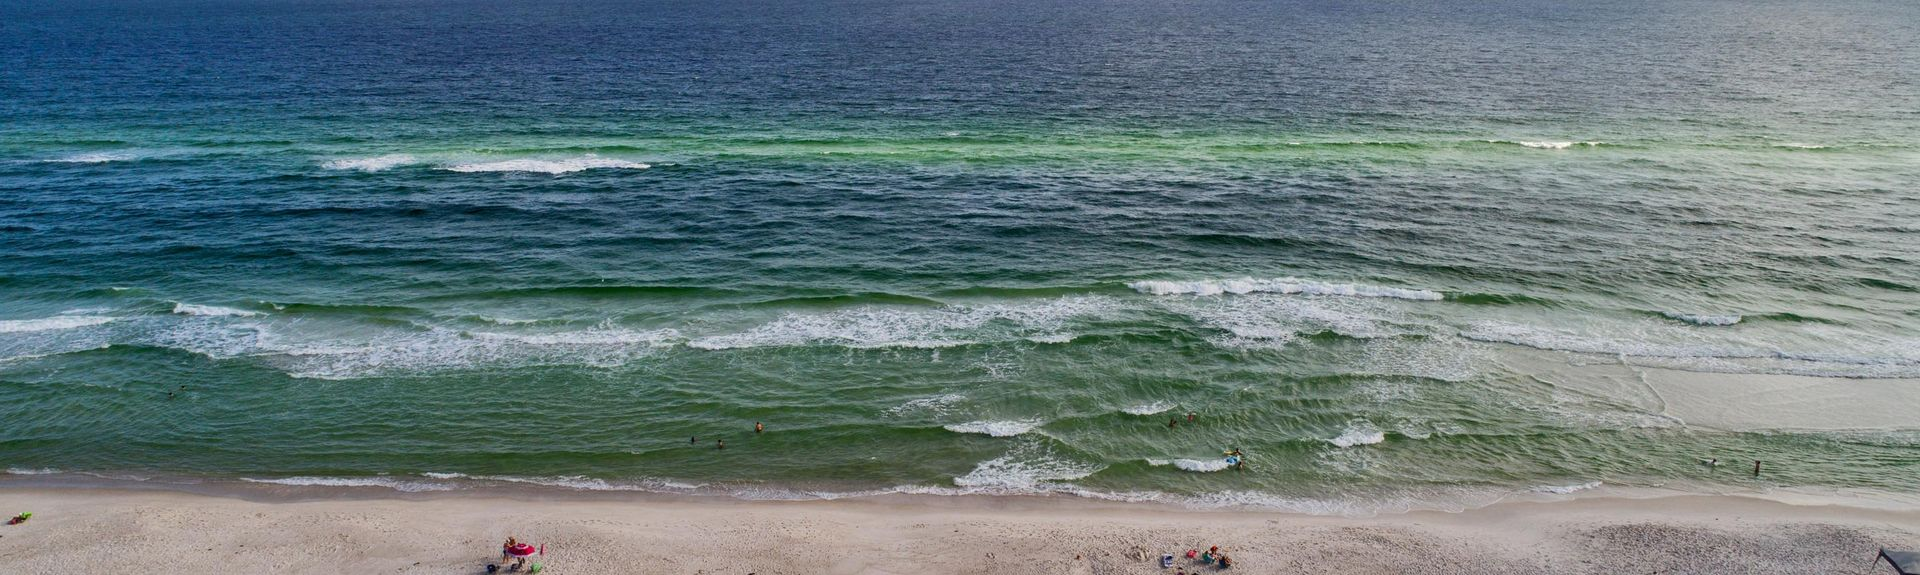 Riviera Beach, Panama City Beach, FL, USA